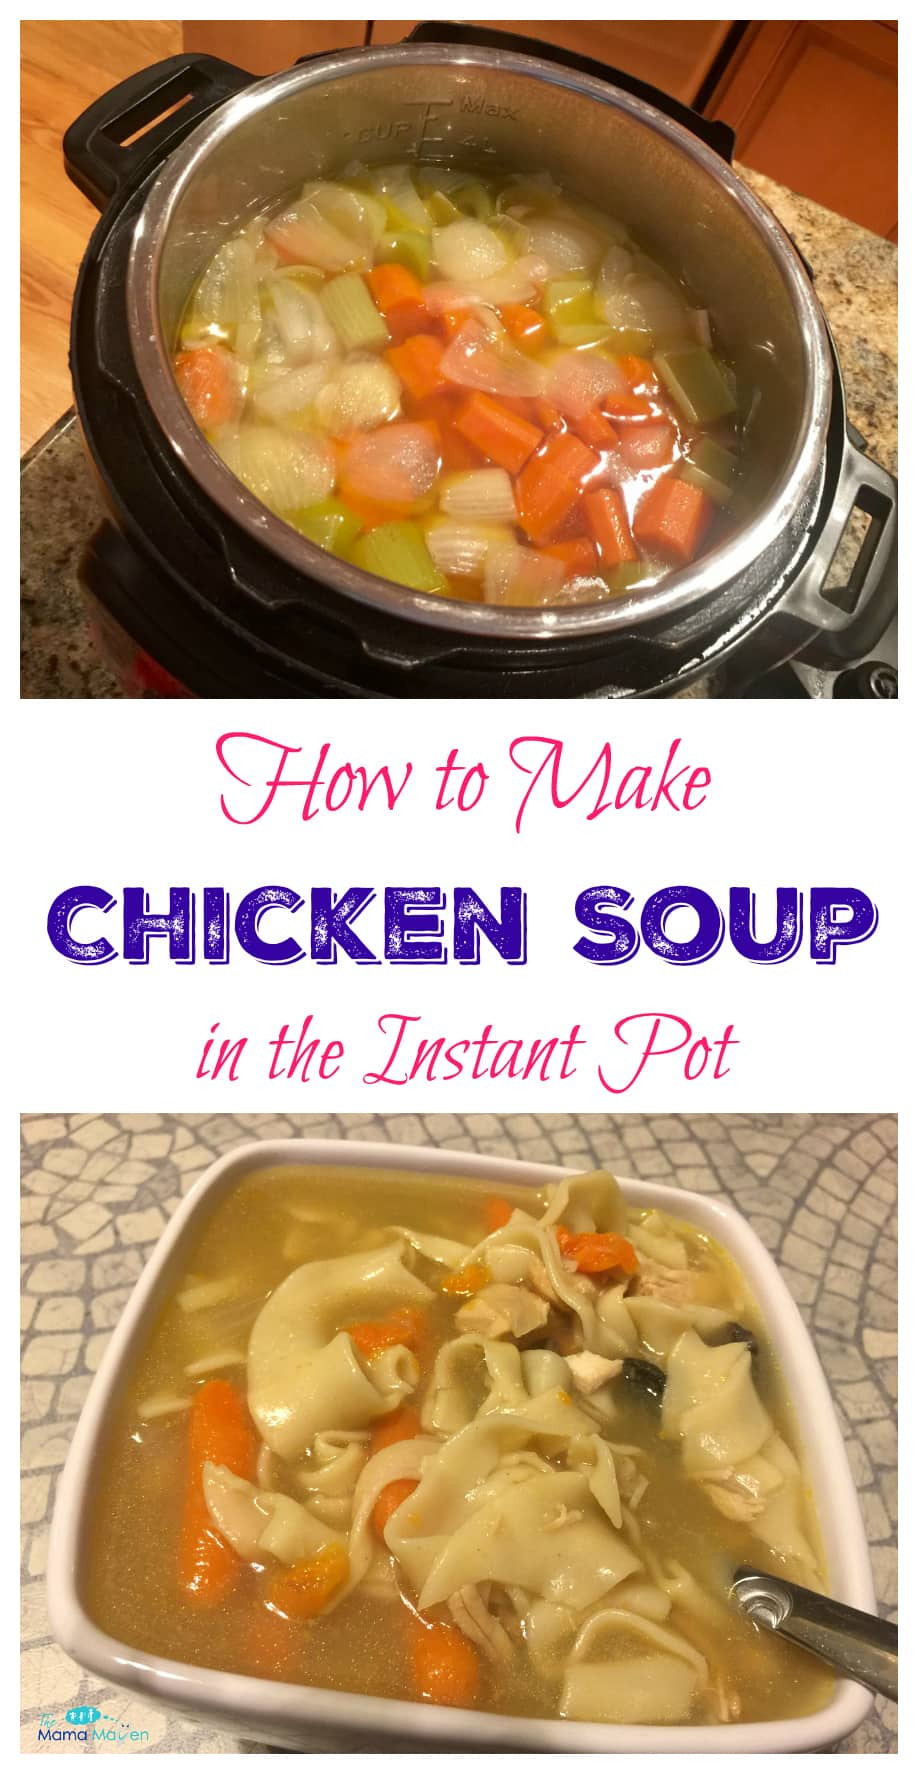 How To Make Chicken Soup  How to Make Chicken Soup in the Instant Pot